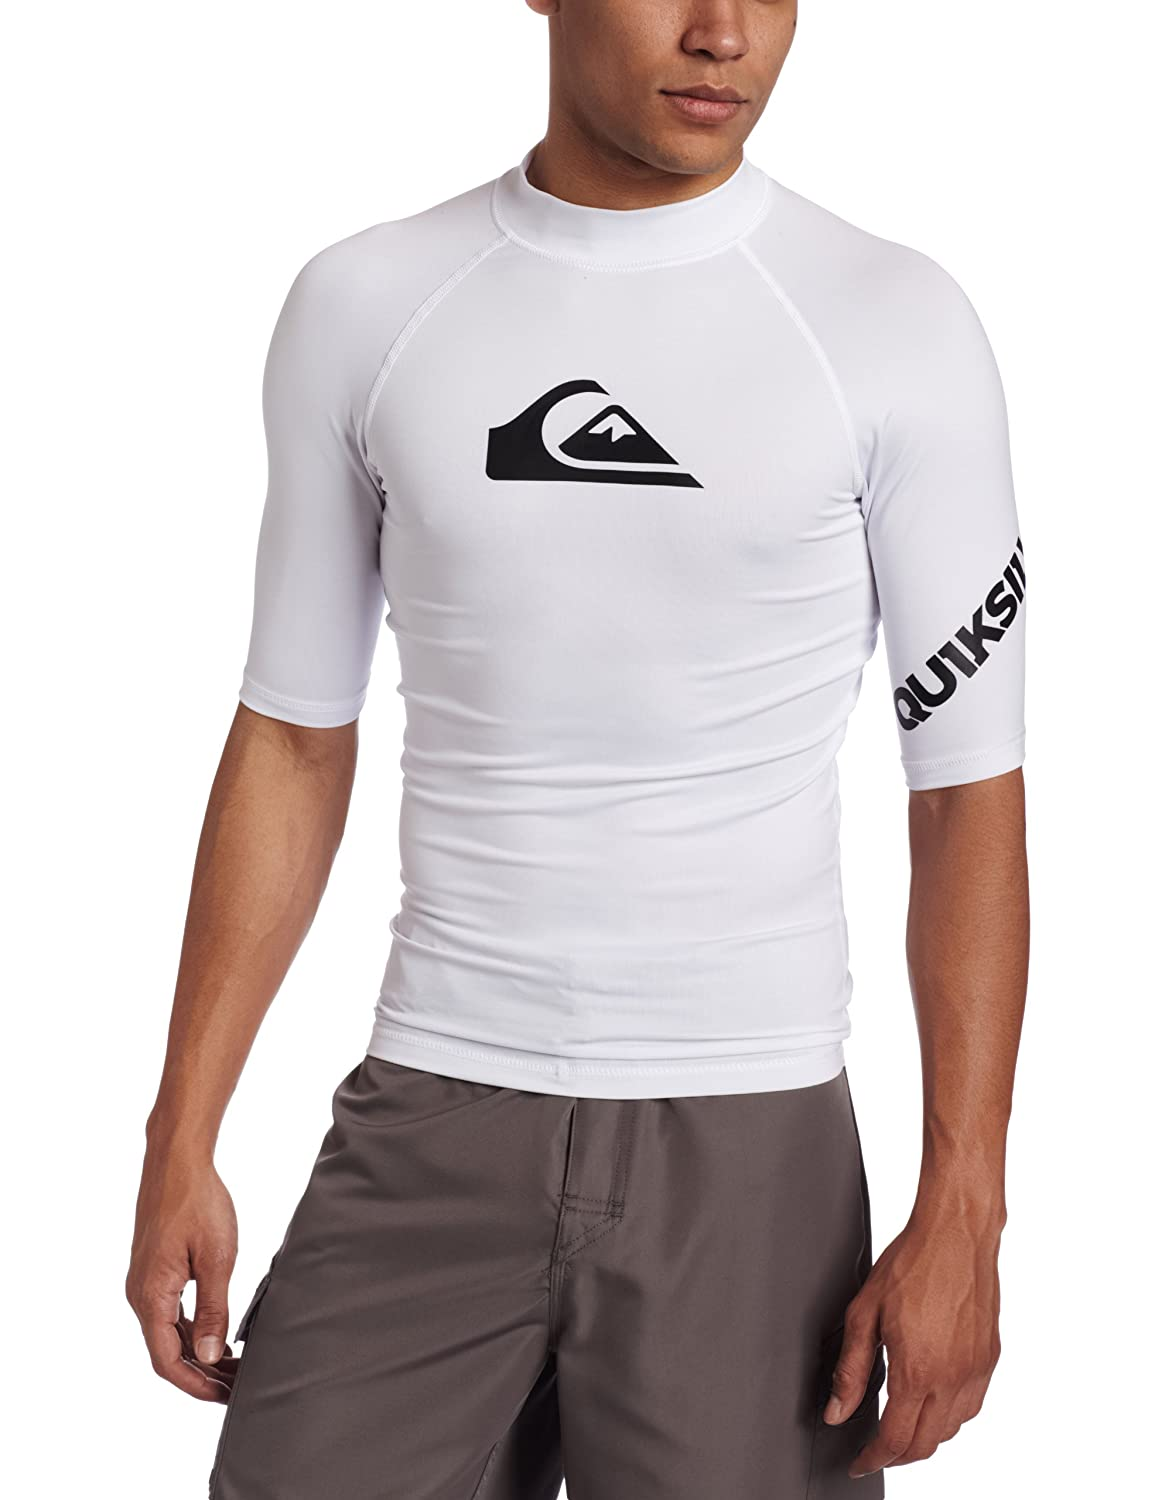 Quiksilver Mens All Time Short Sleeve Rashguard $19.95 - $29.95